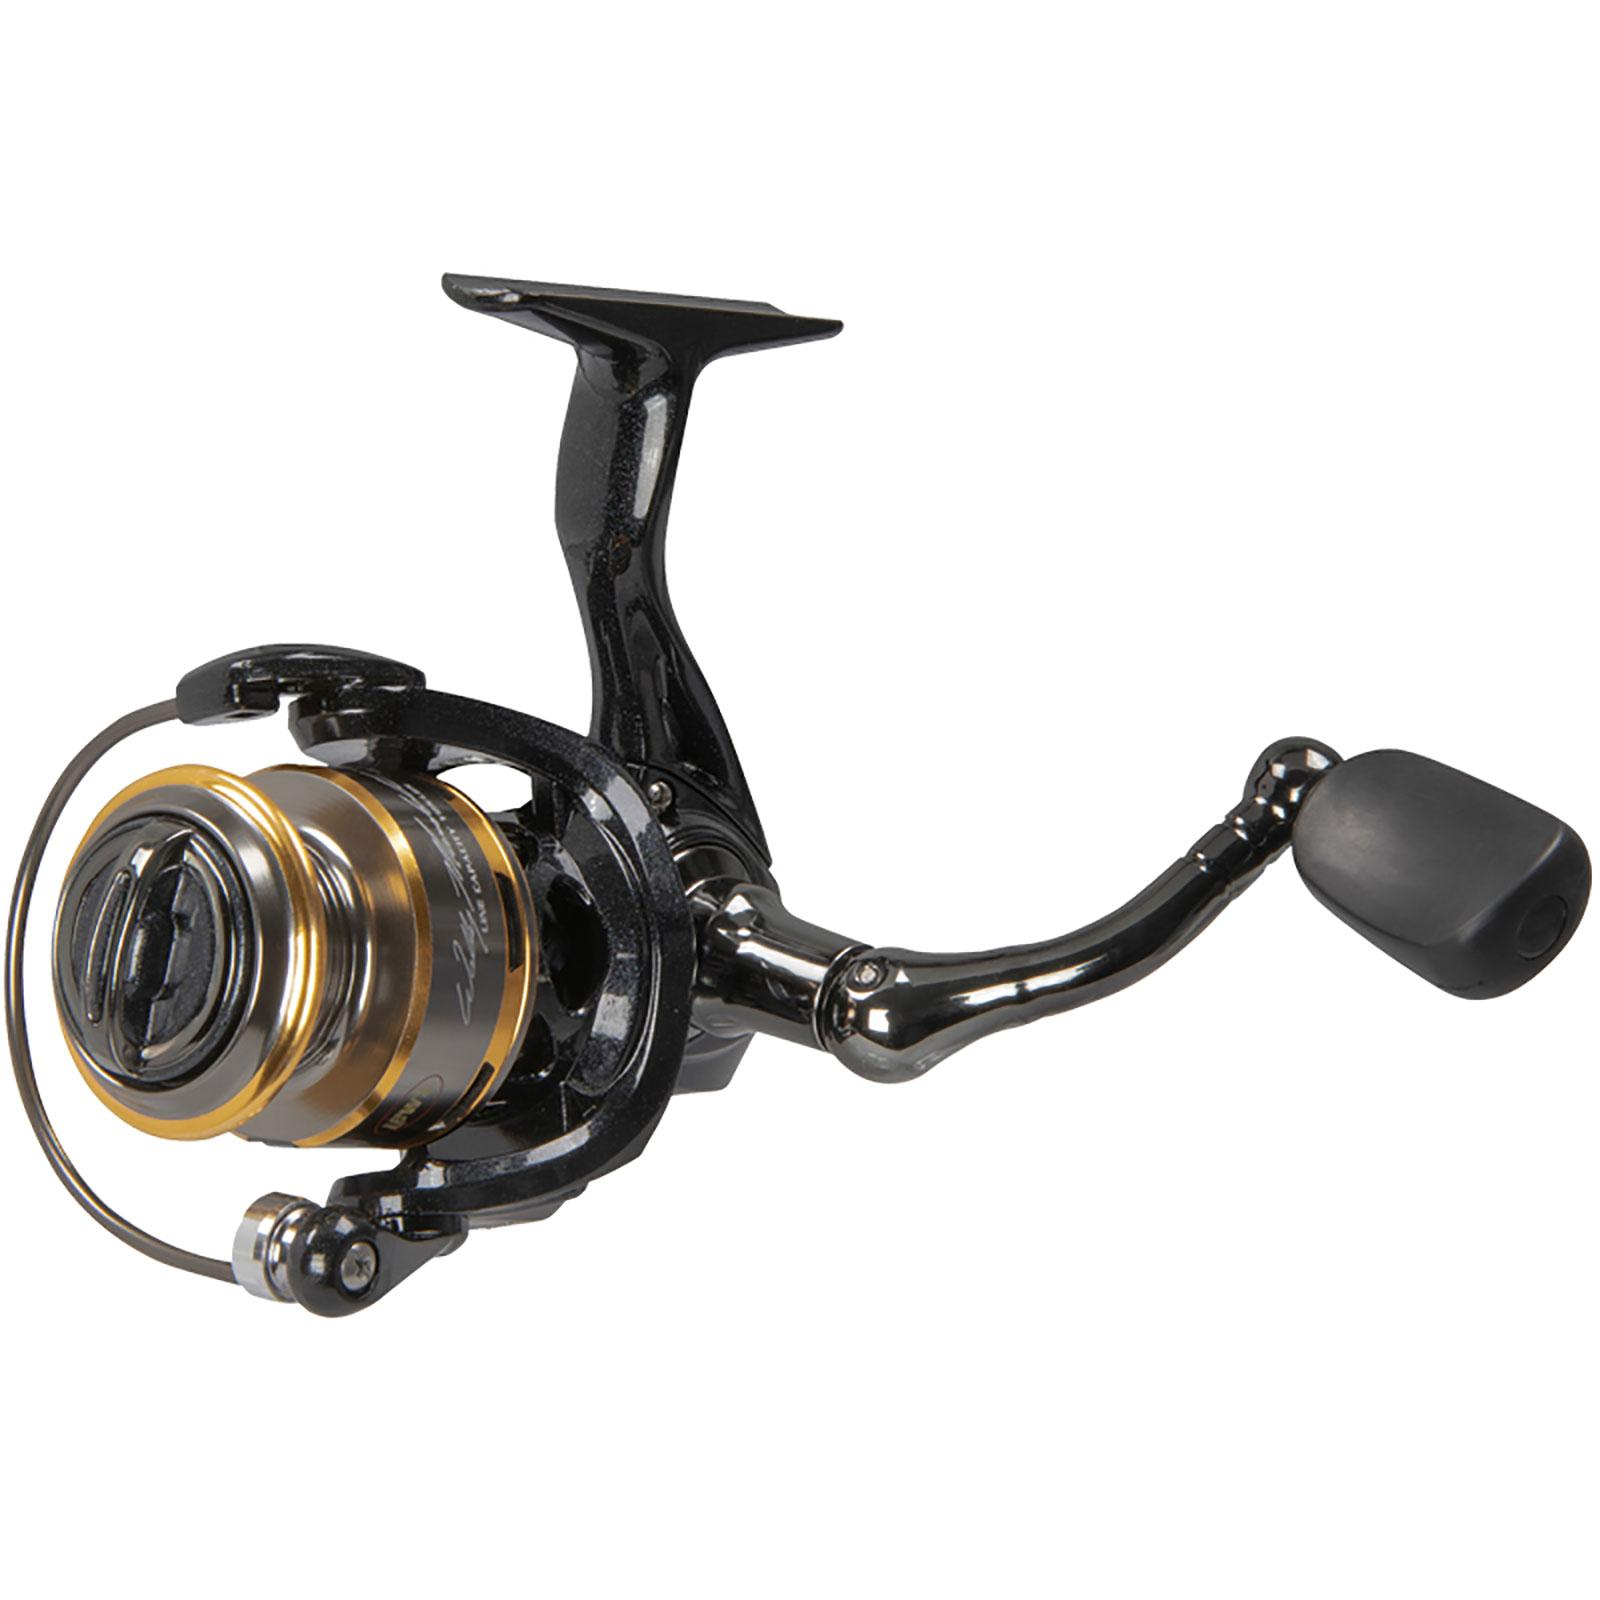 Lew's Wally Marshall Signature Spinning Reel